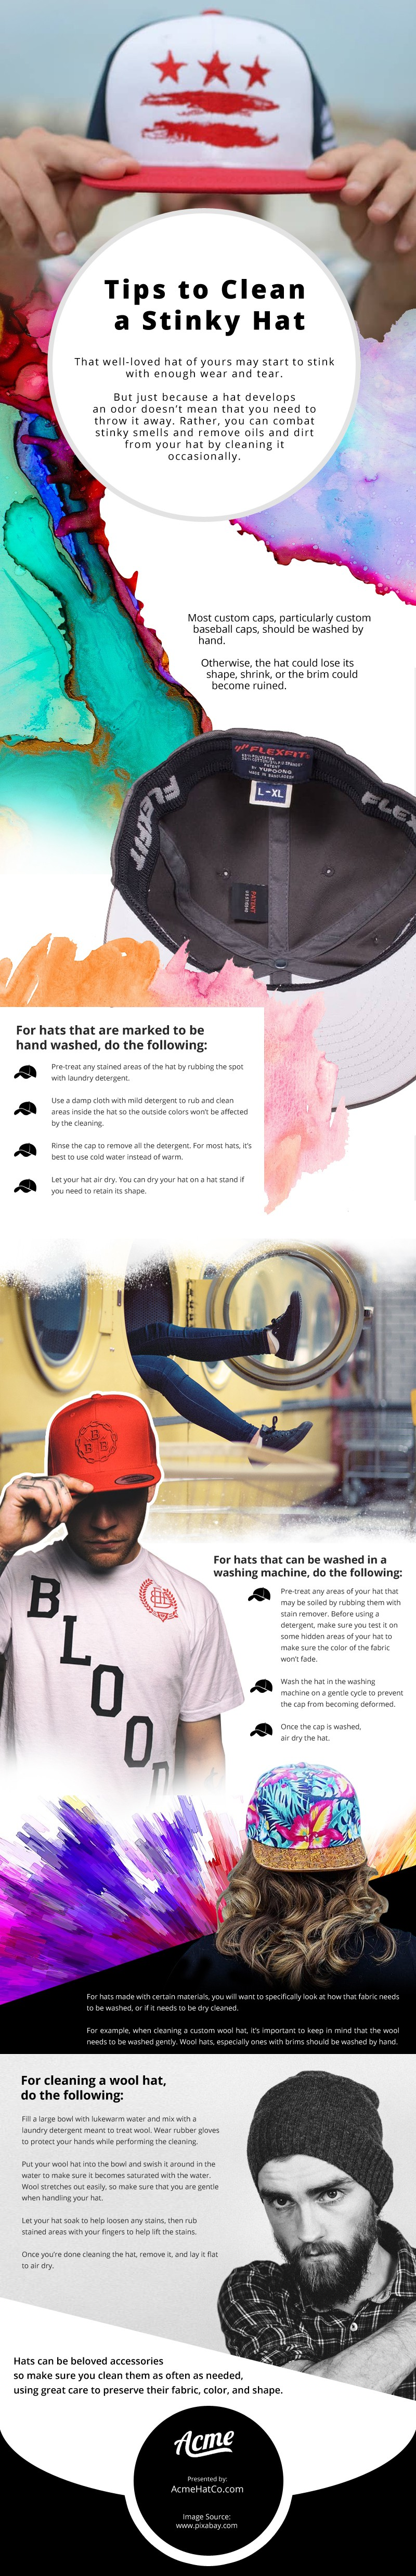 Tips to Clean a Stinky Hat [infographic]